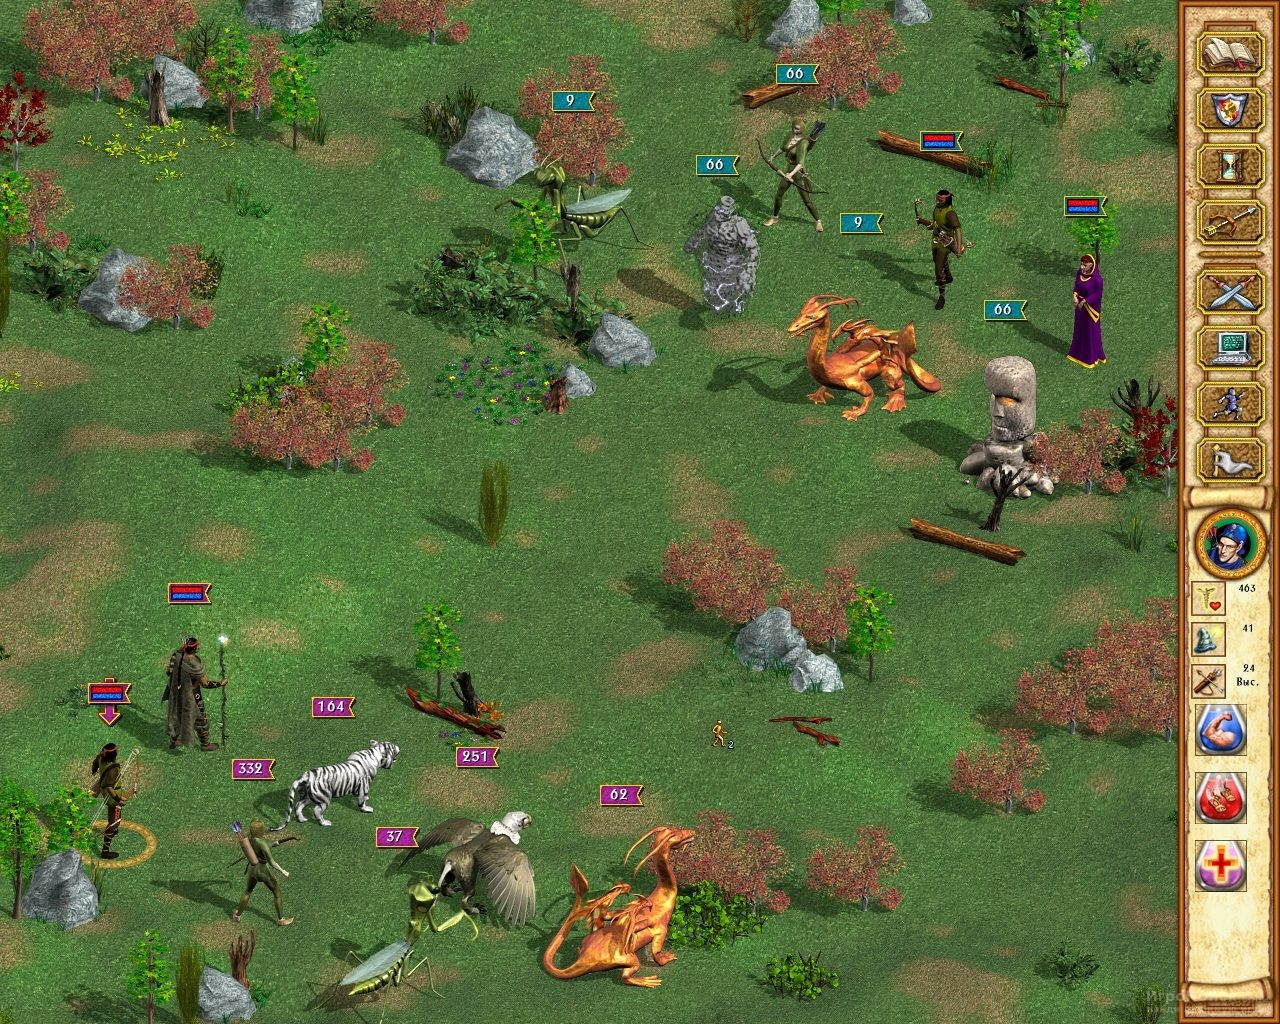 Скриншот к игре Heroes of Might and Magic IV